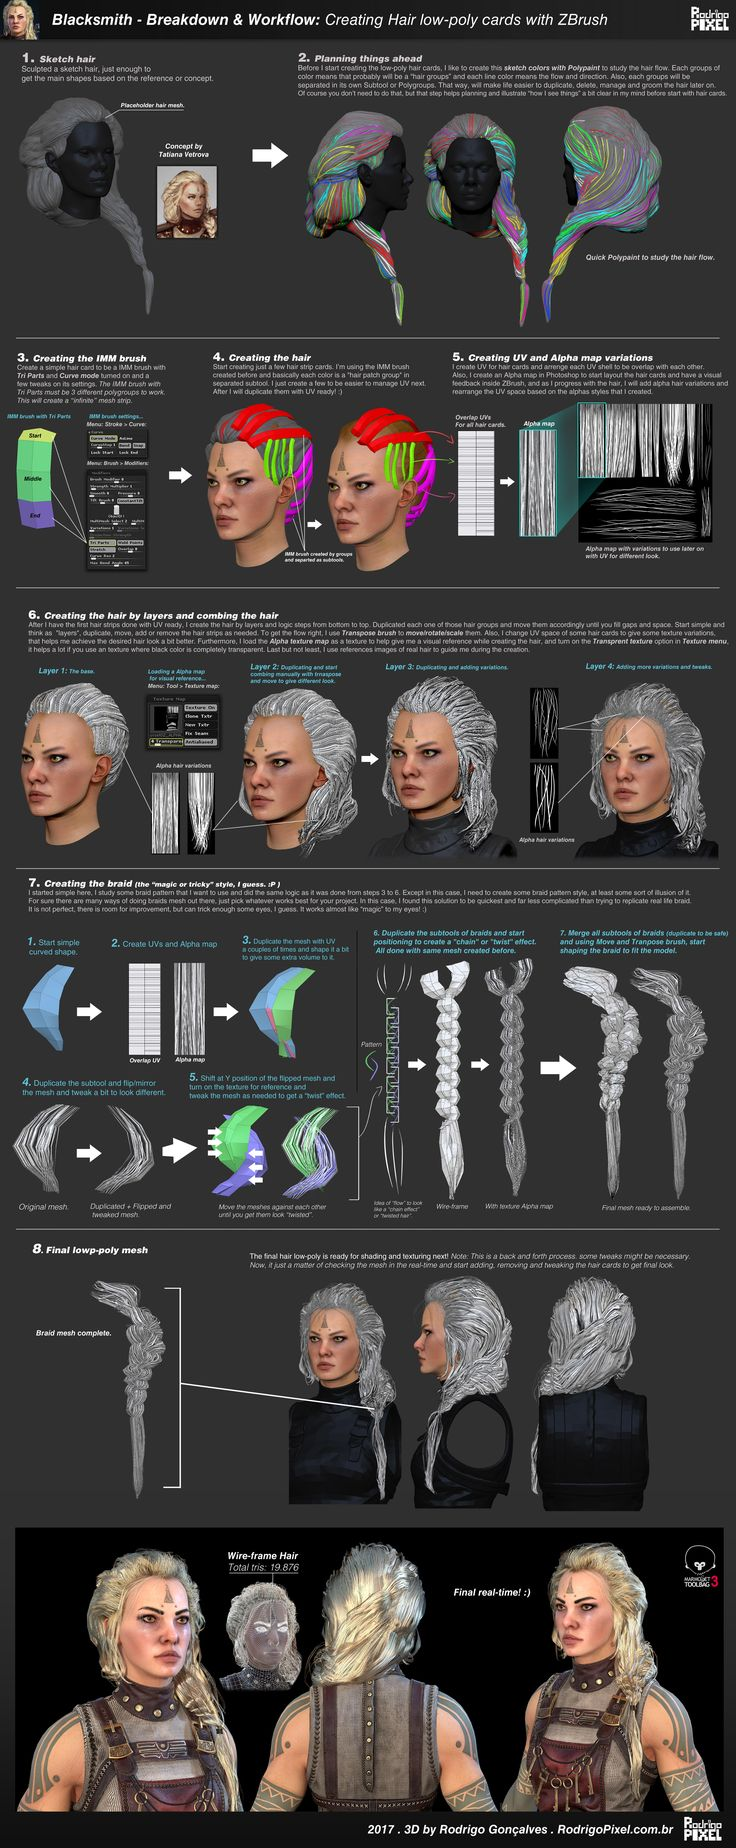 blacksmith_hair_breakdown.jpg (2500×6280)